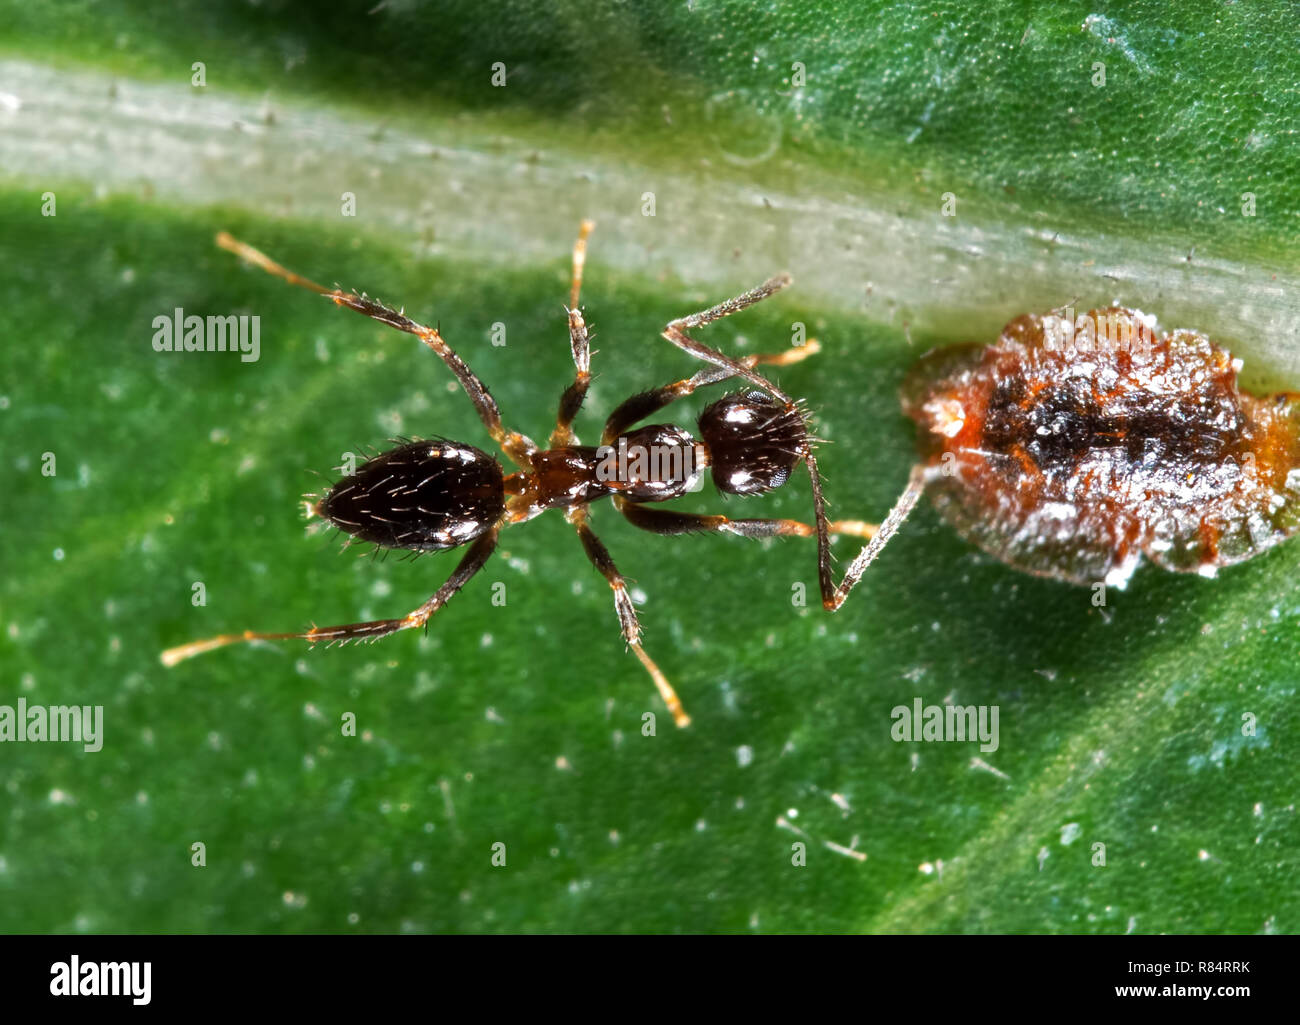 Closeup Tiny Black Garden Ant with Scale Insect on Green Leaf - Stock Image